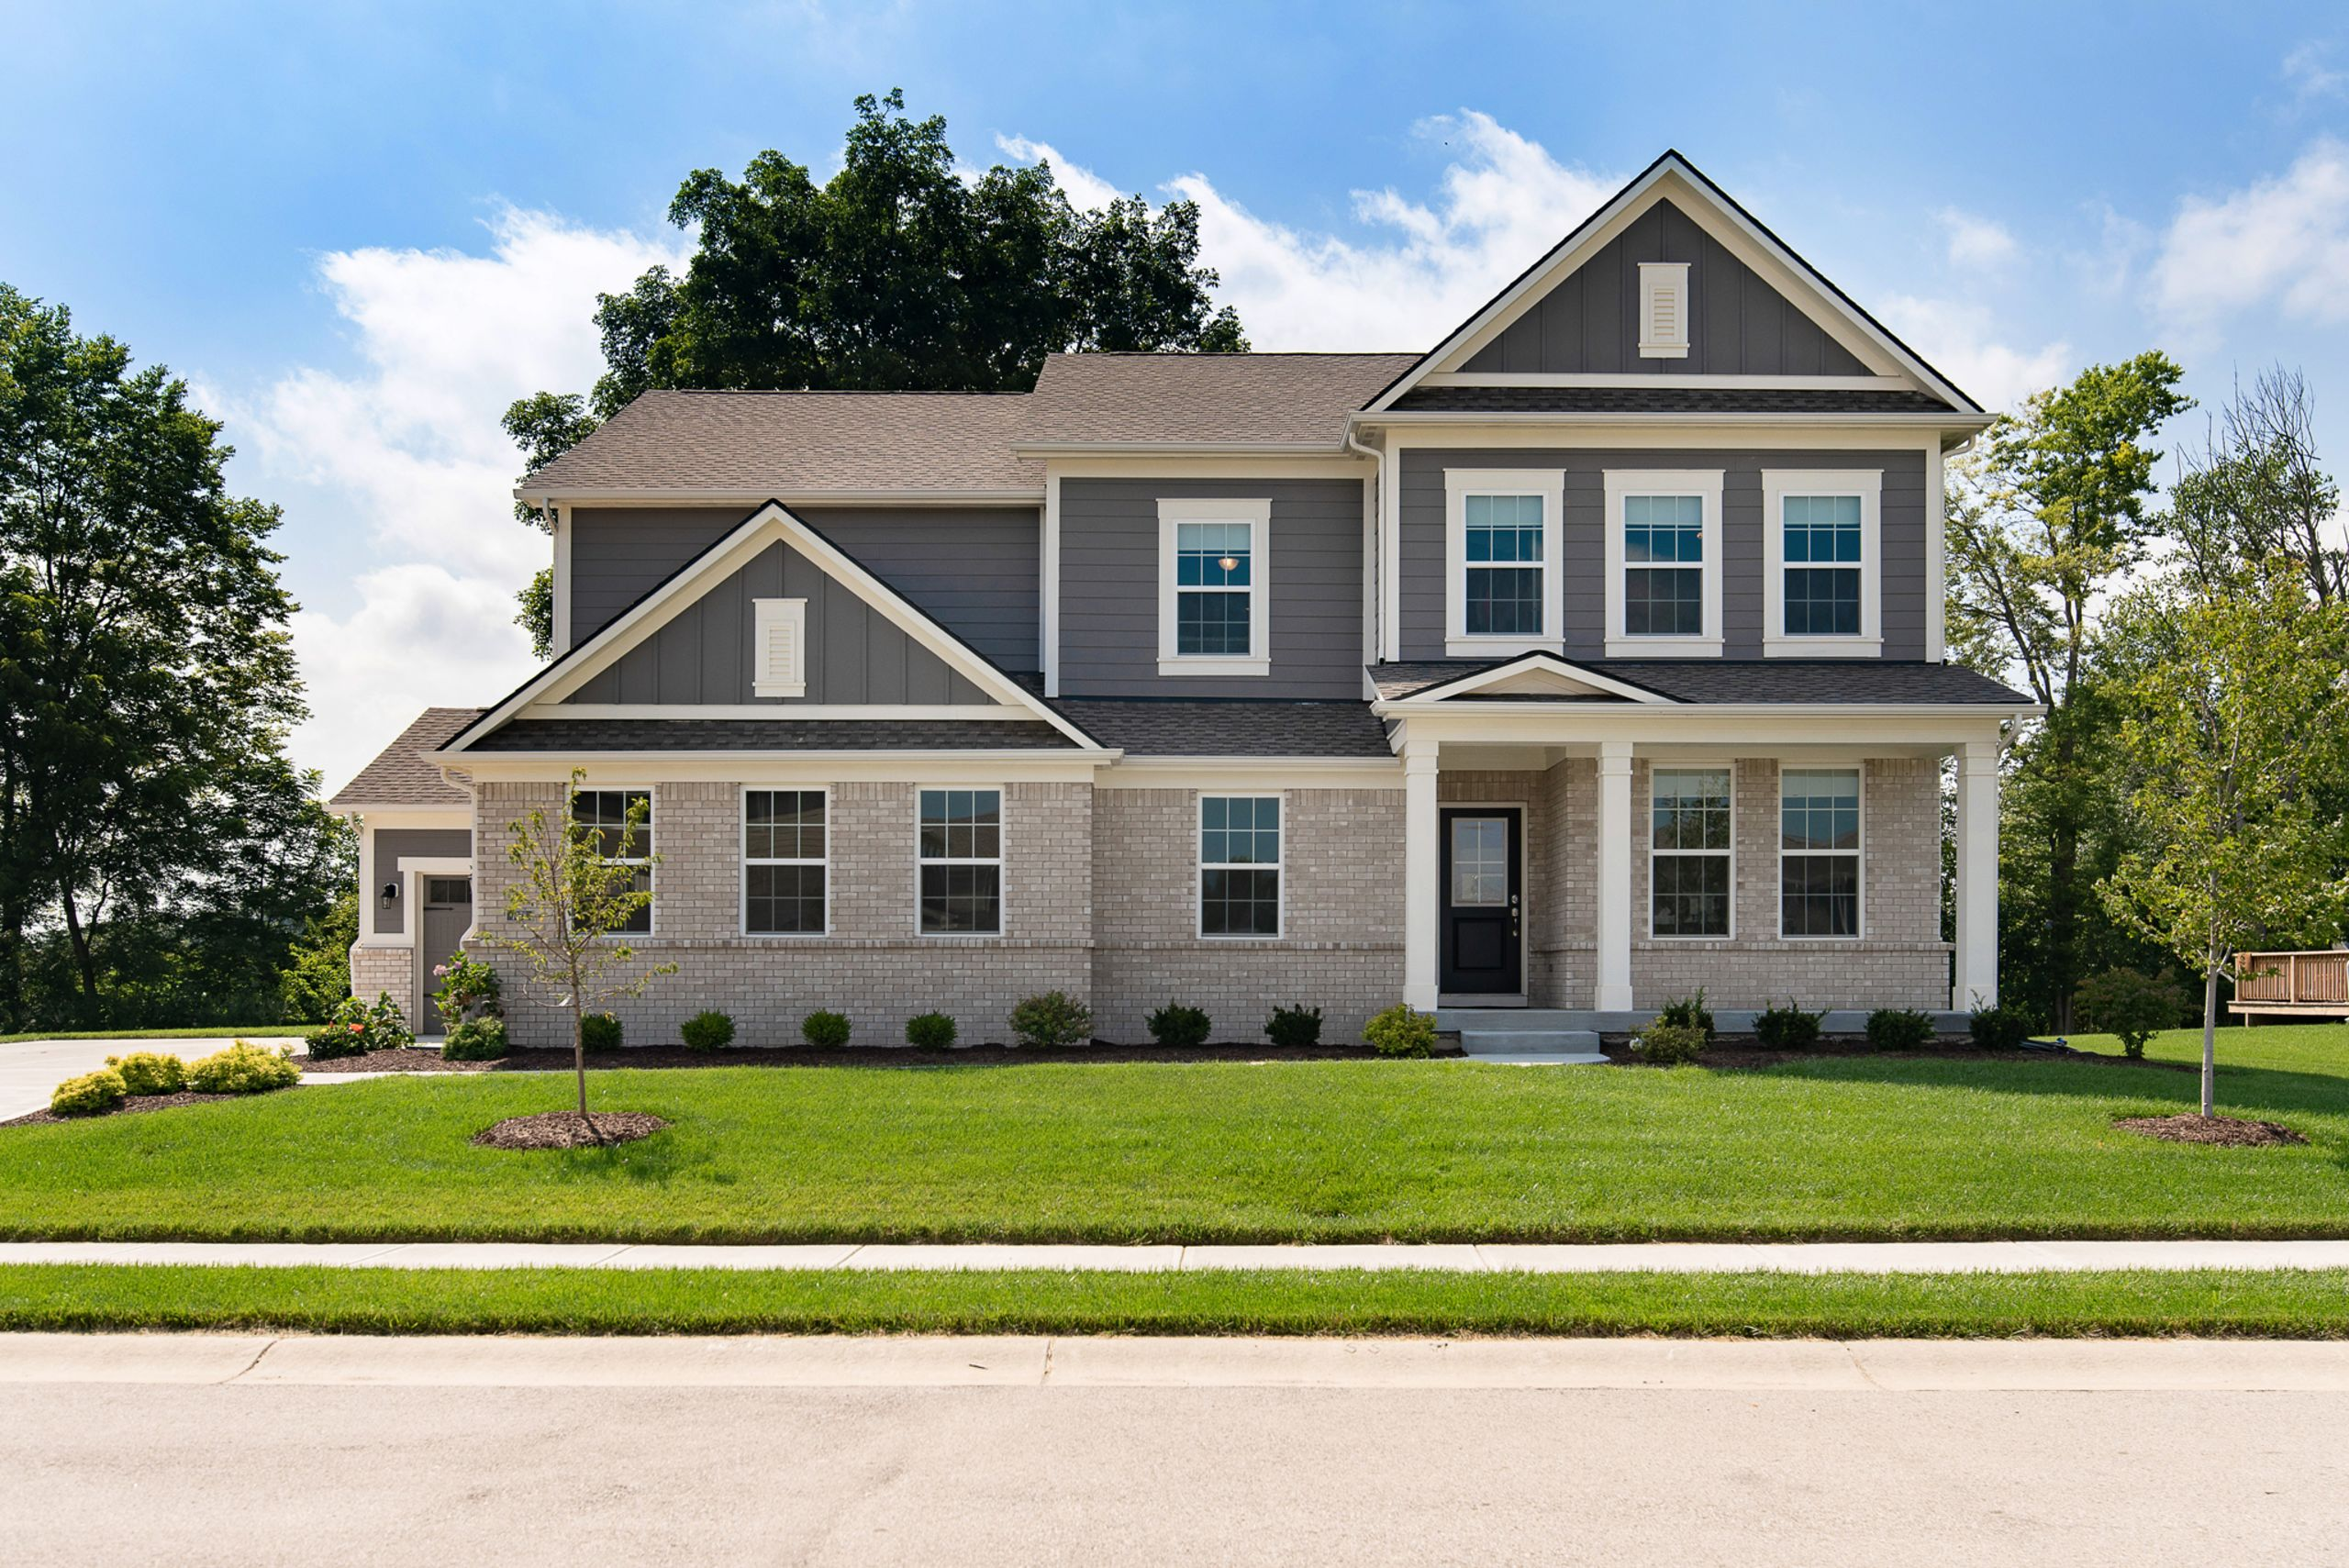 PENDING IN BROWNSBURG- 2 DOM & MULTIPLE OFFERS